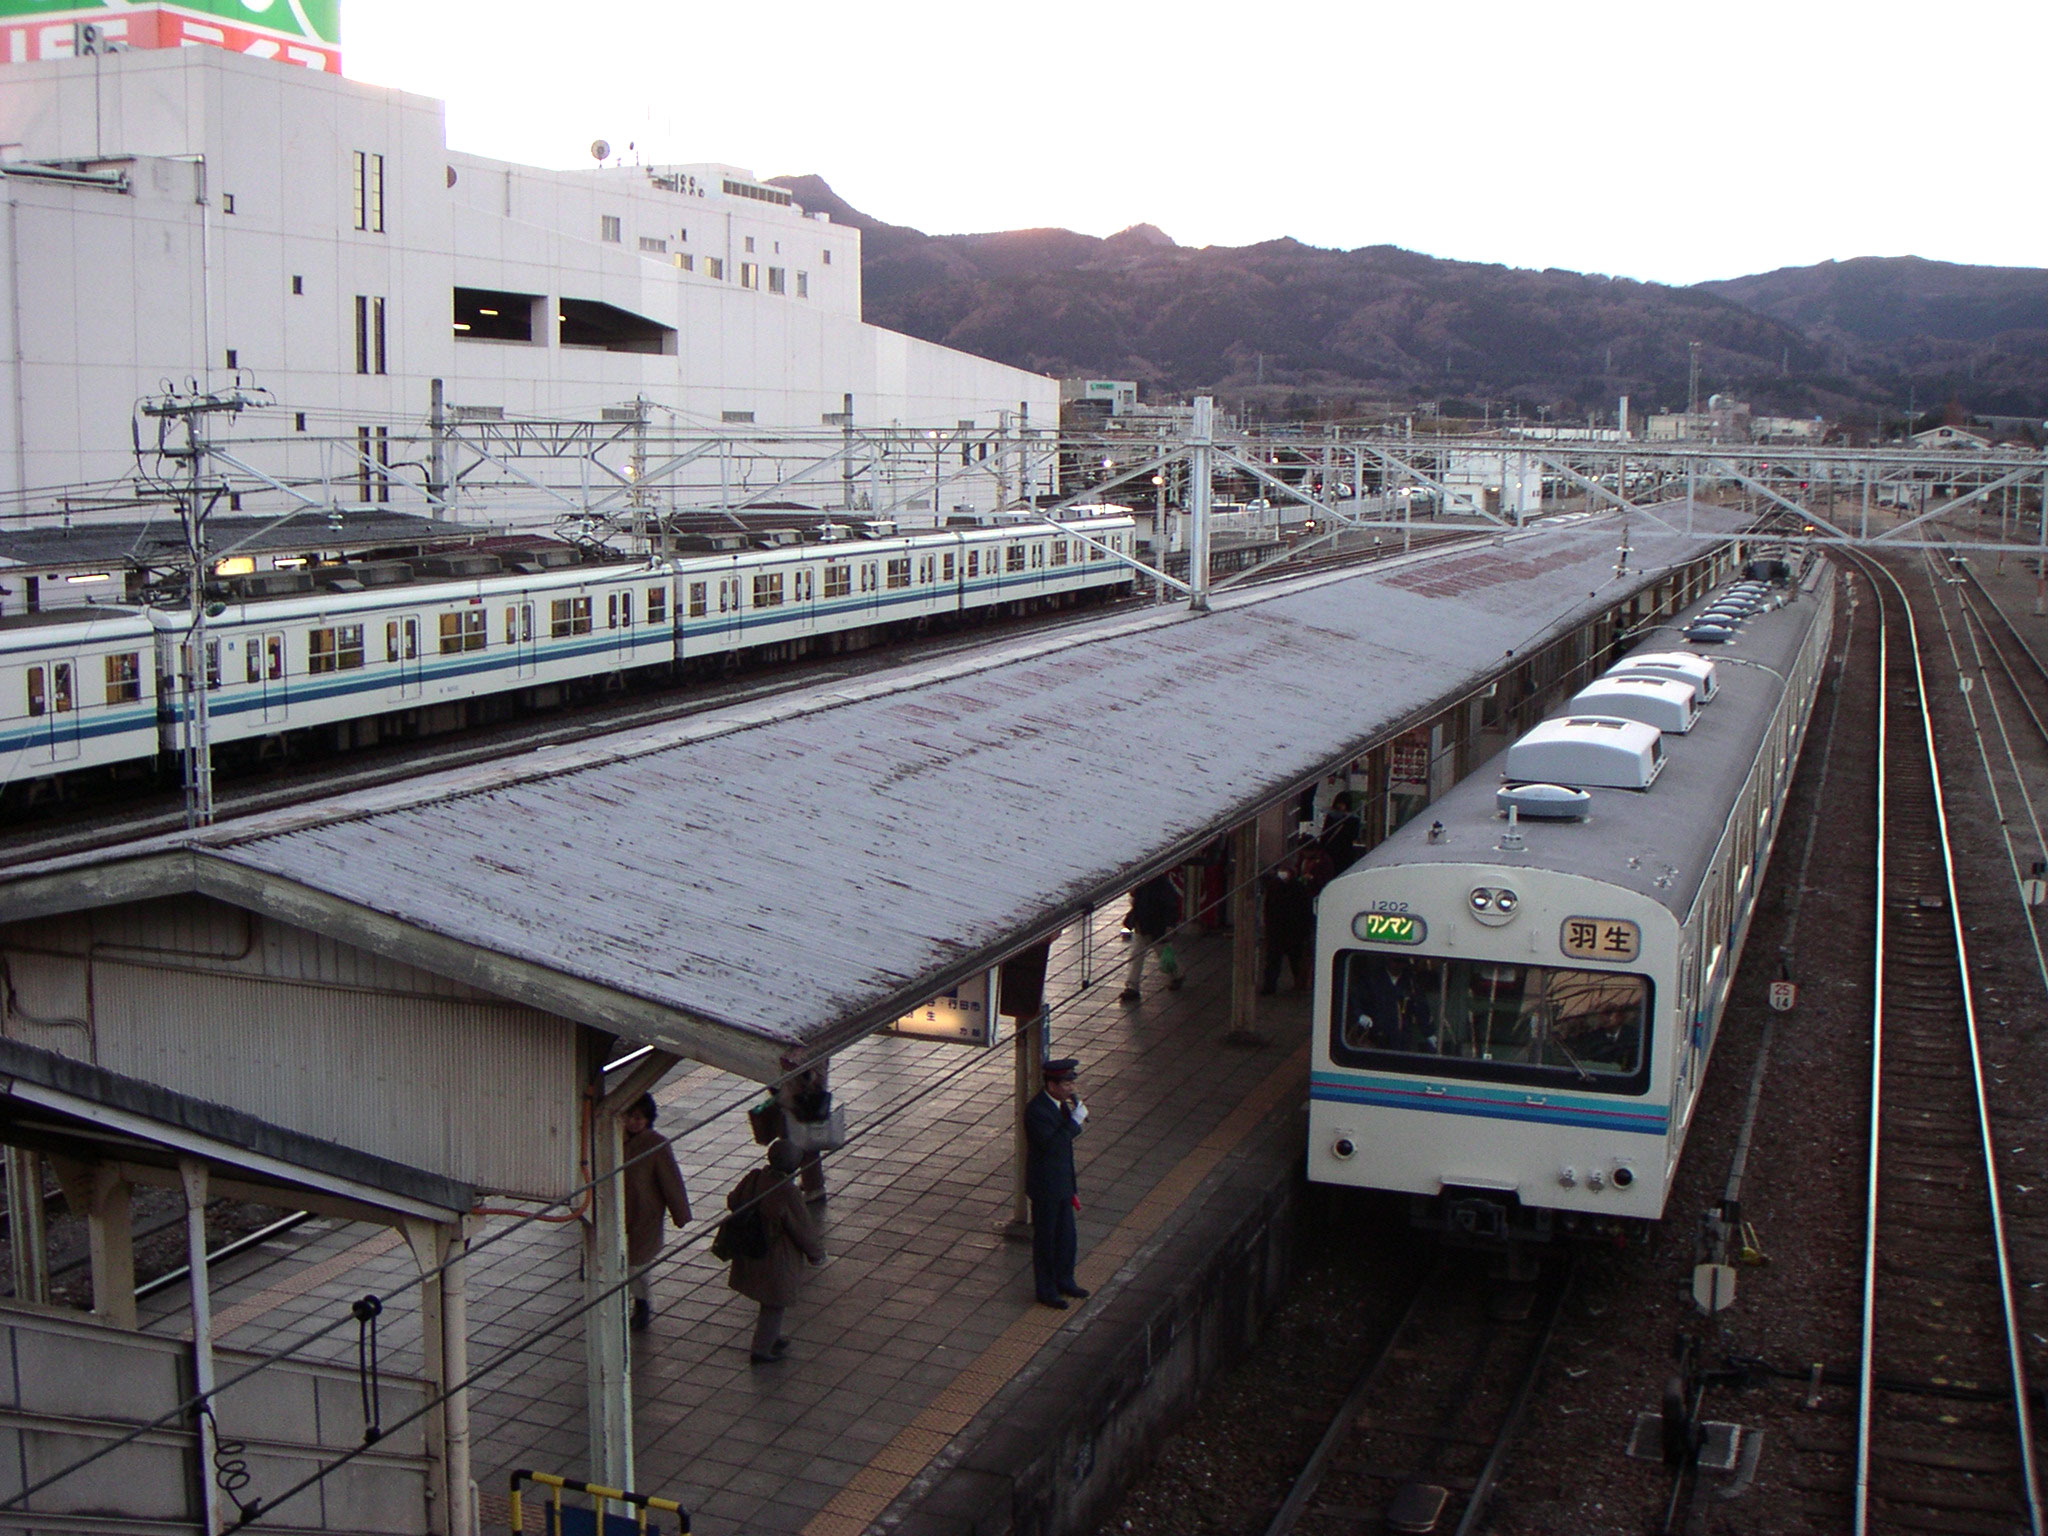 https://upload.wikimedia.org/wikipedia/commons/9/94/Yorii_Station%2C_Chichibutets.jpg